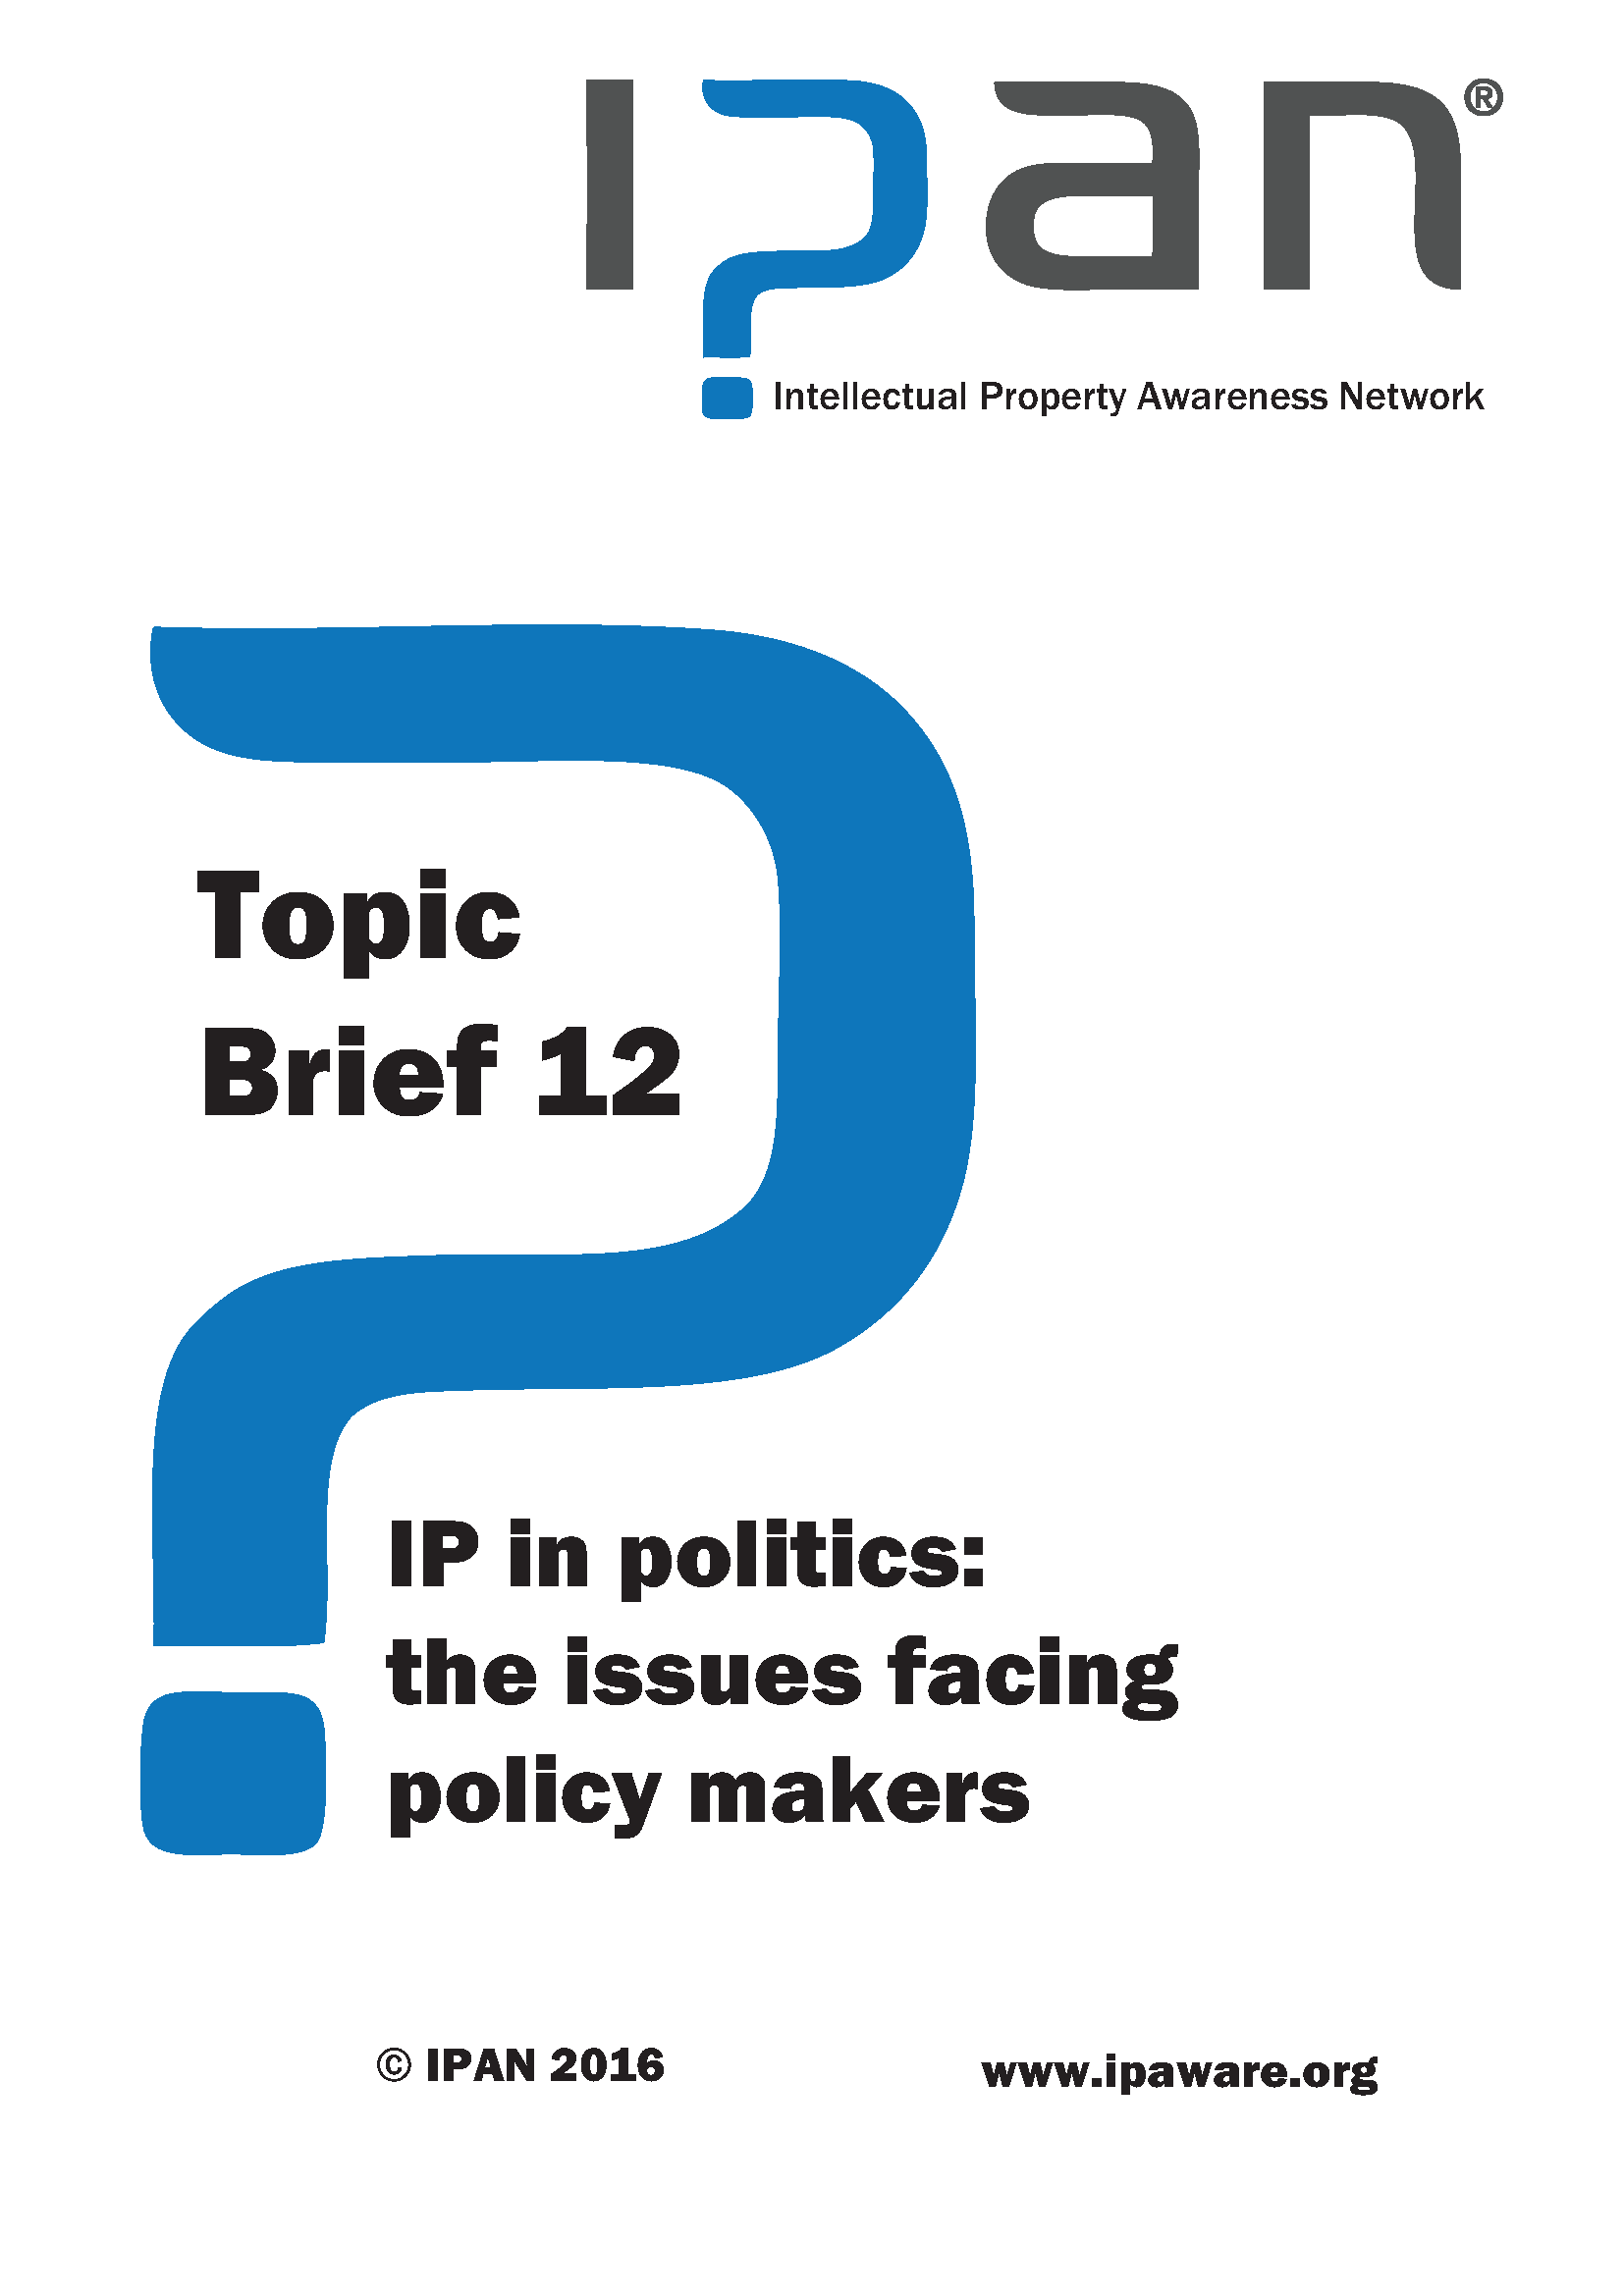 IP in politics: issue facing policy makers